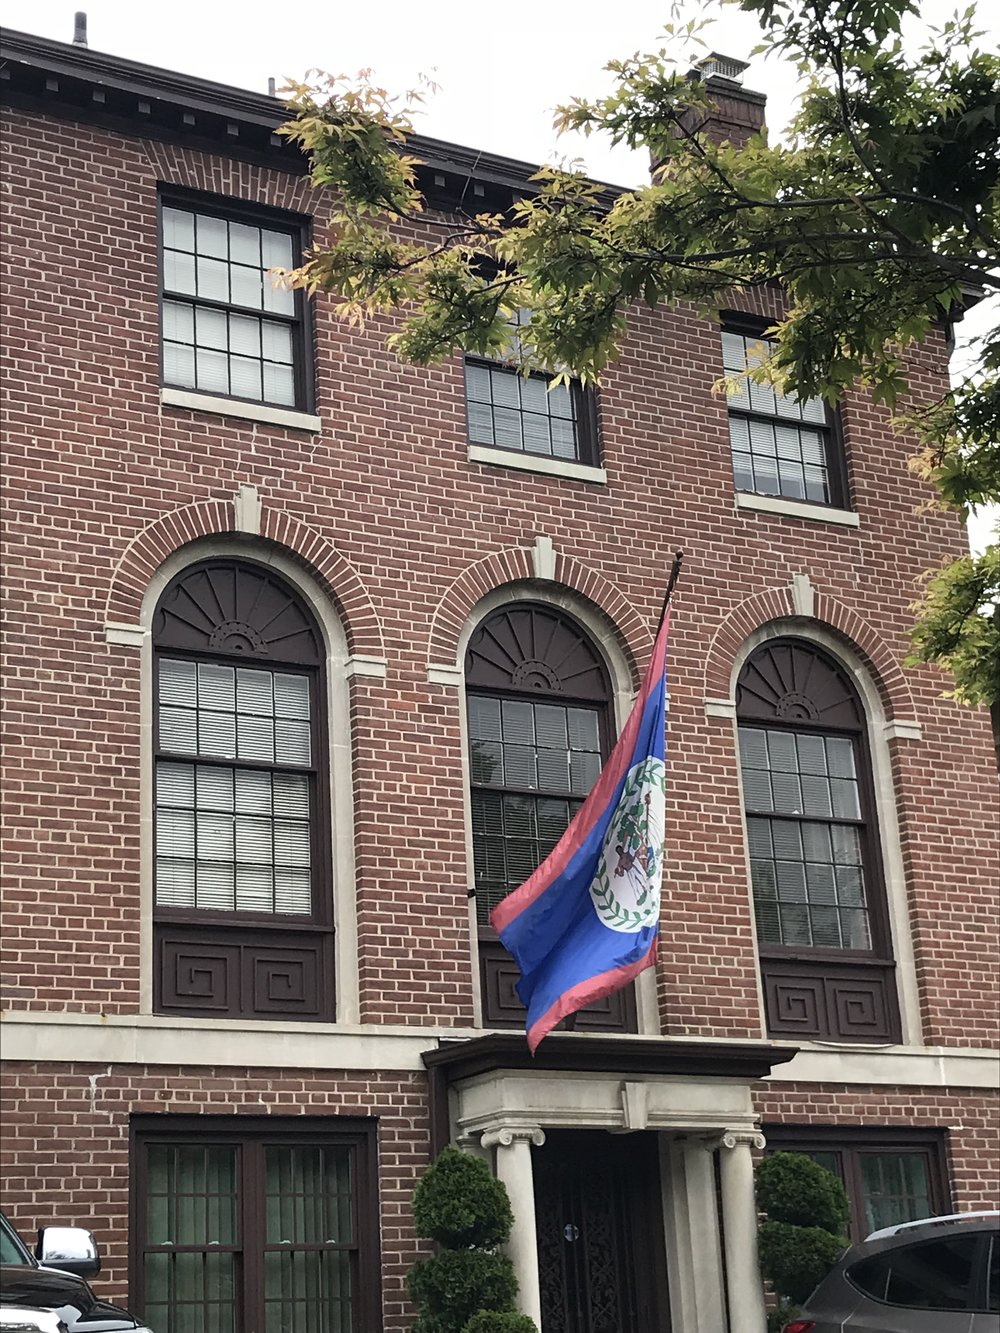 The Embassy of Belize.